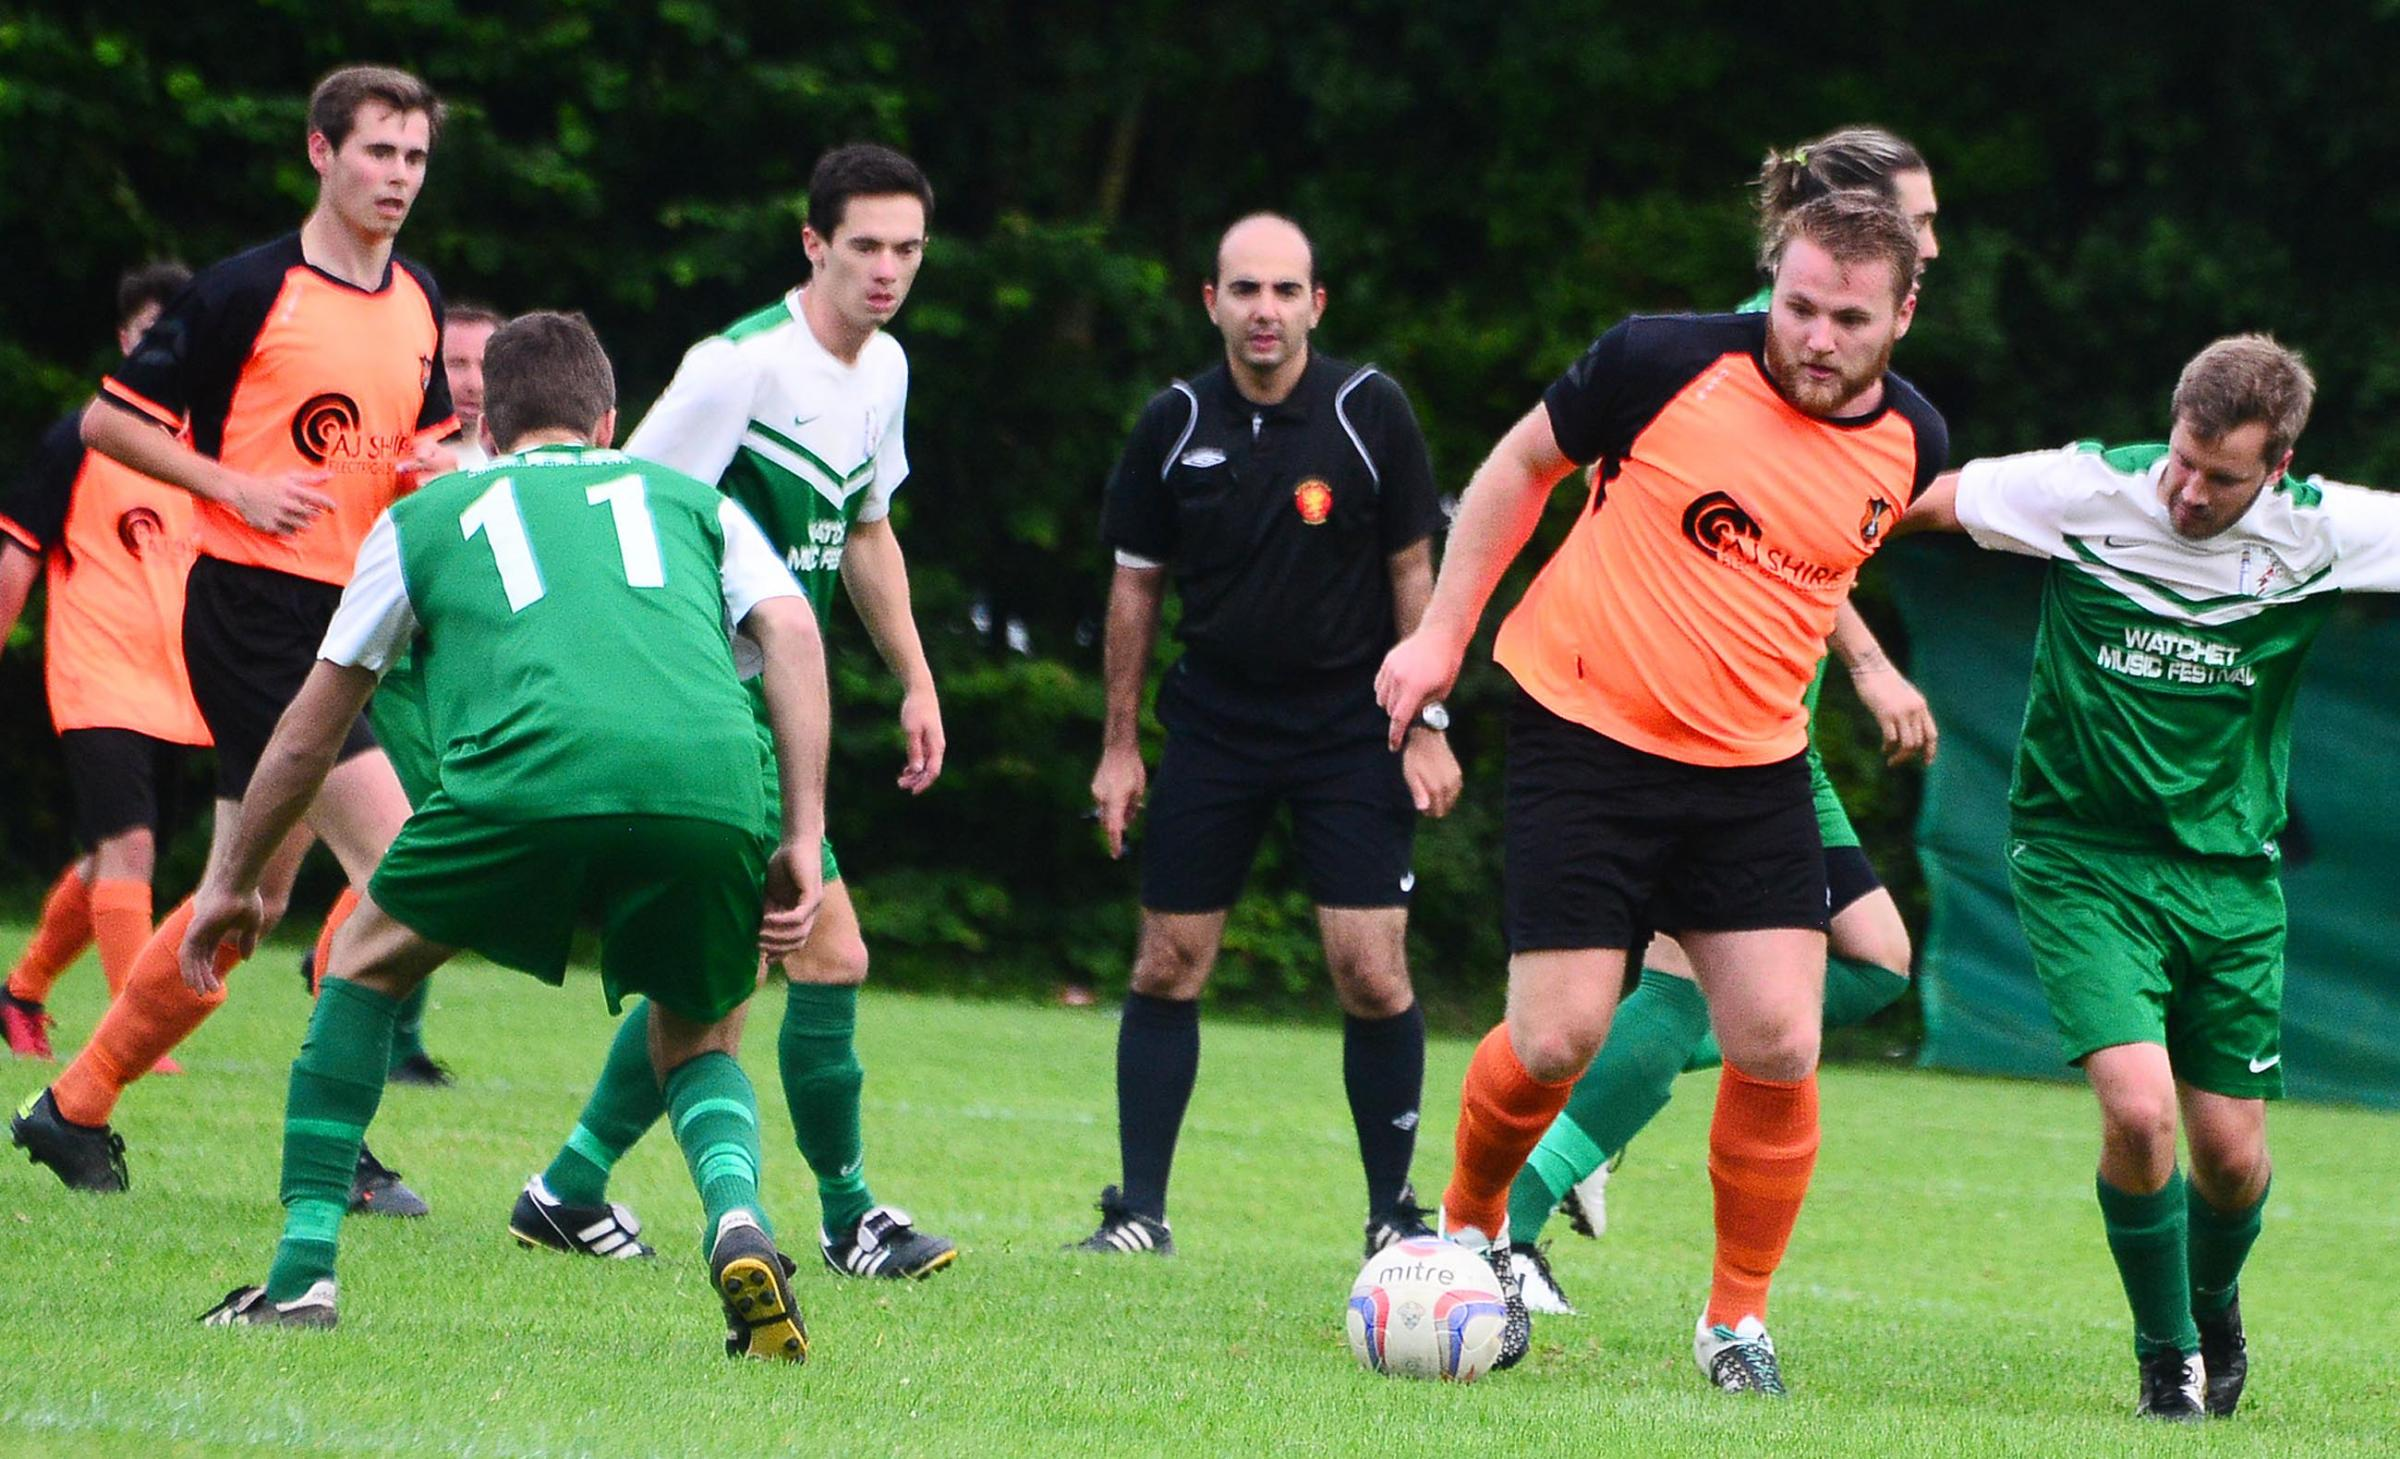 WELLINGTON'S Tom Ellis (orange kit) in action against Watchet Town on Tuesday night. The friendly match at Richard Huish College ended 1-1.